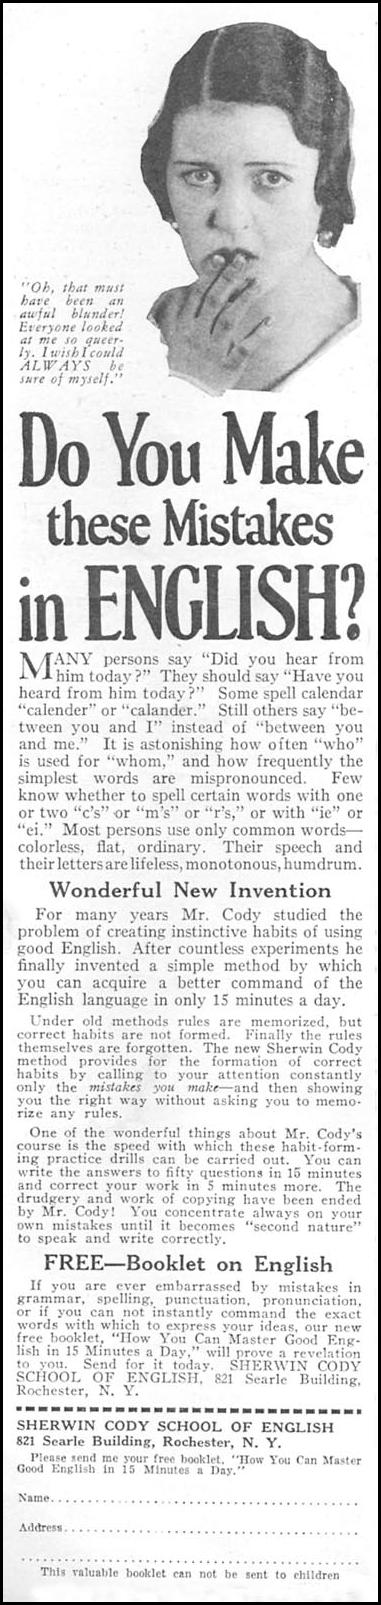 MASTER GOOD ENGLISH IN 15 MINUTES A DAY GOOD HOUSEKEEPING 01/01/1932 p. 140